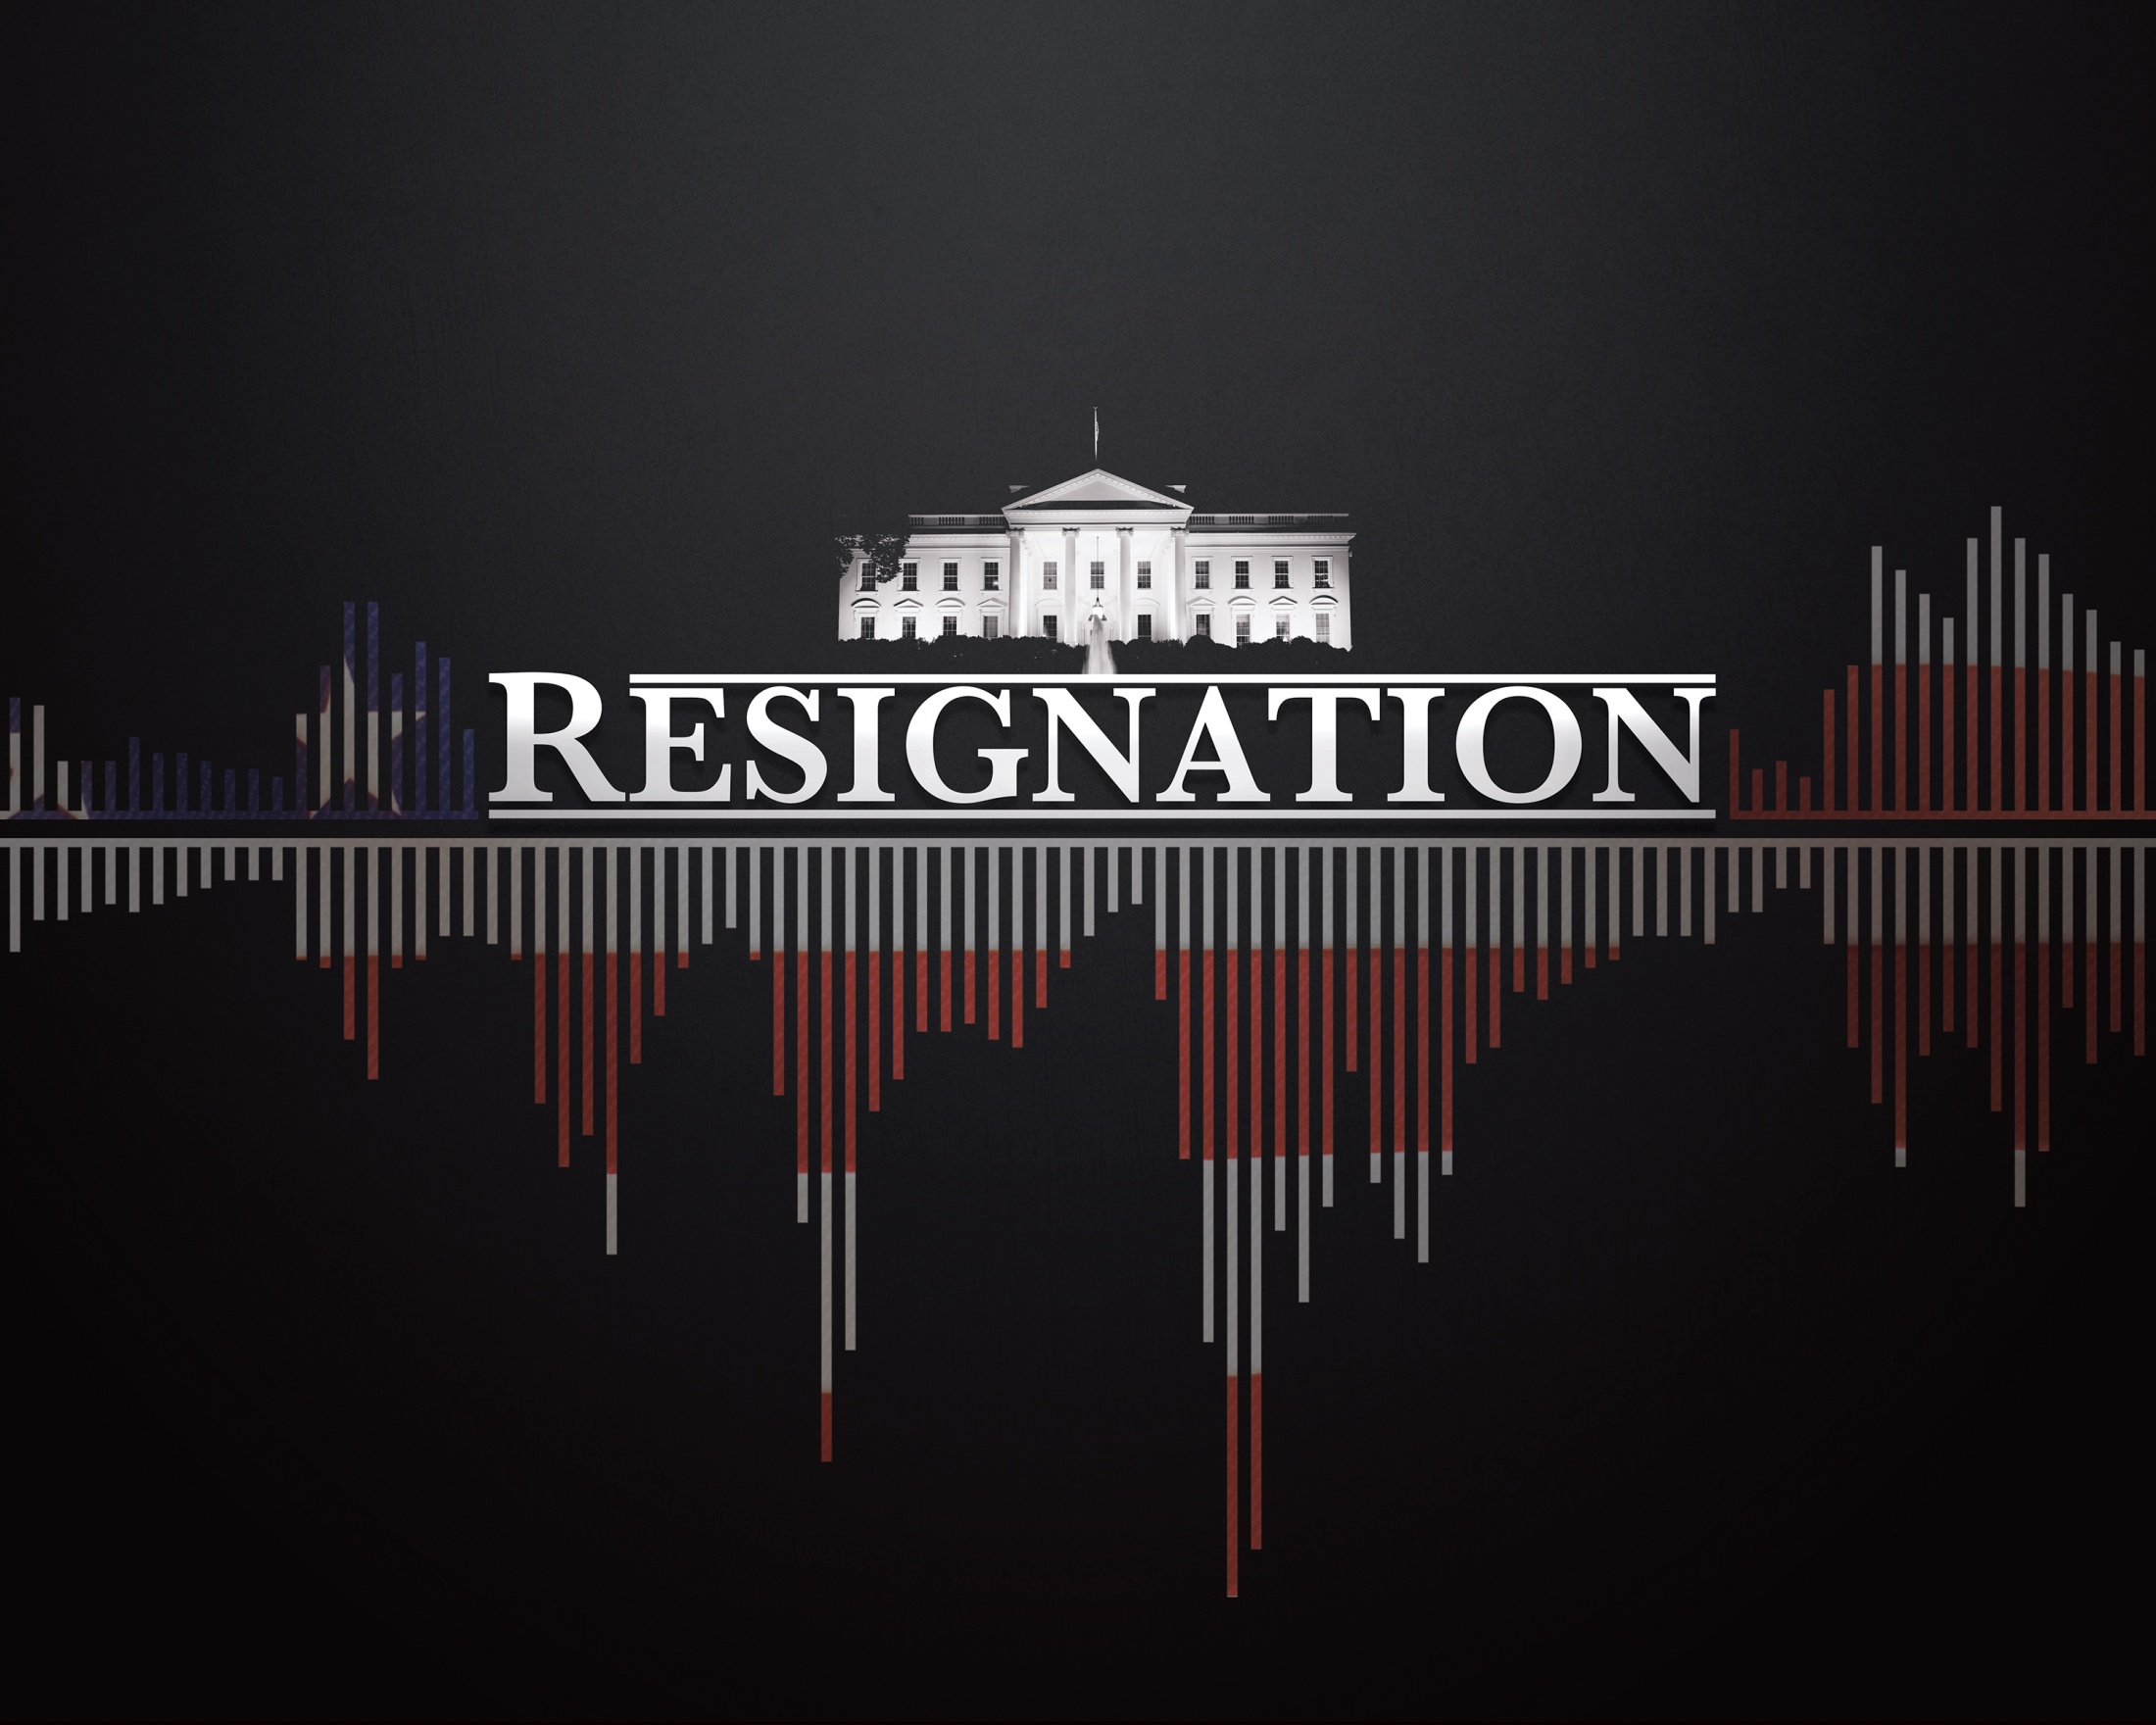 Image Media for Resignation